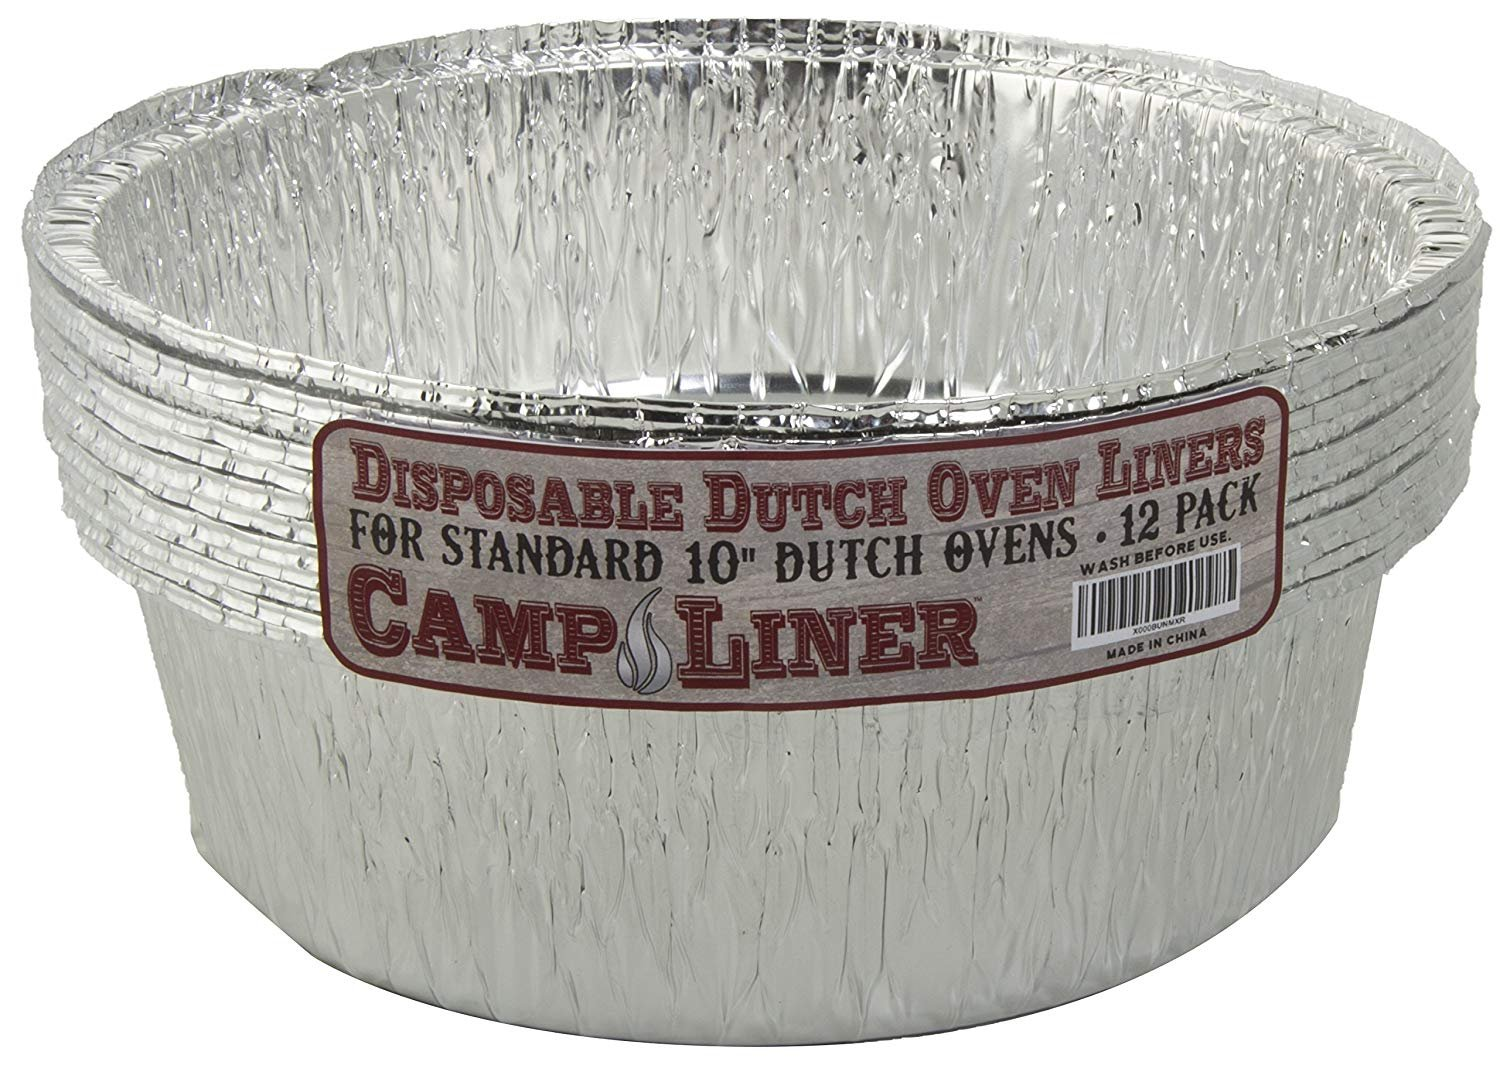 "Disposable Foil Dutch Oven Liner, 12 Pack 14"" 8Q liners, No more Cleaning, Seasoning your Dutch ovens. Lodge, Camp Chef."